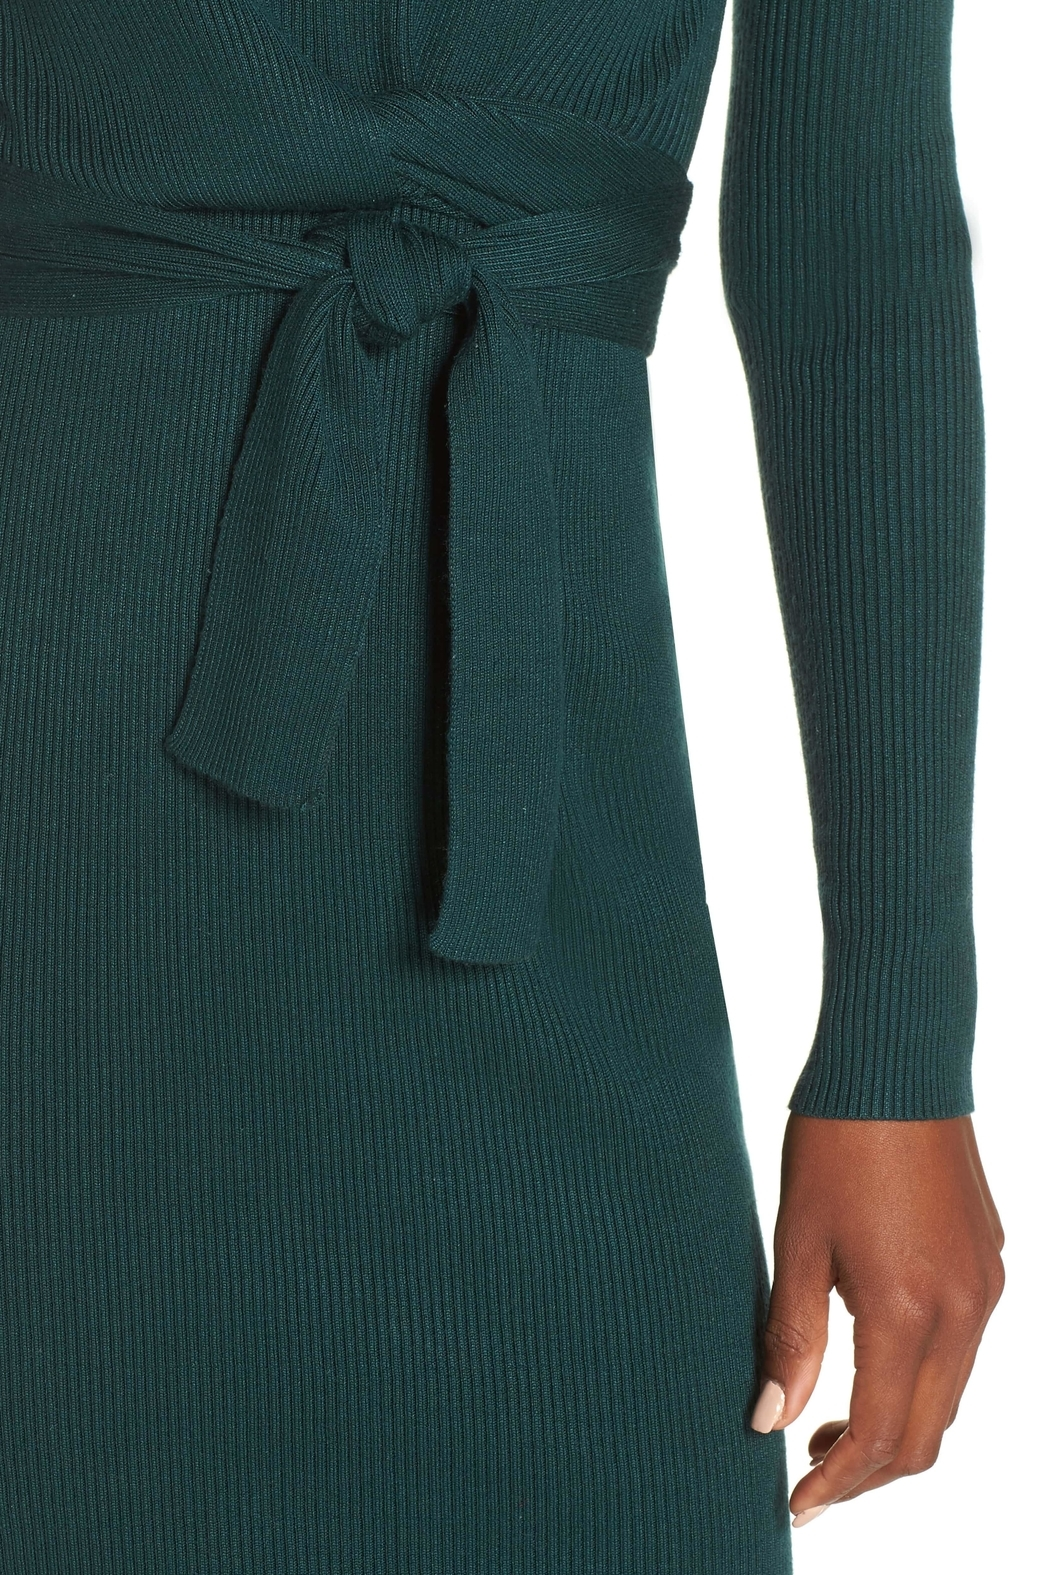 Adelyn Rae Knit Sweater Dress - Back Cropped Image